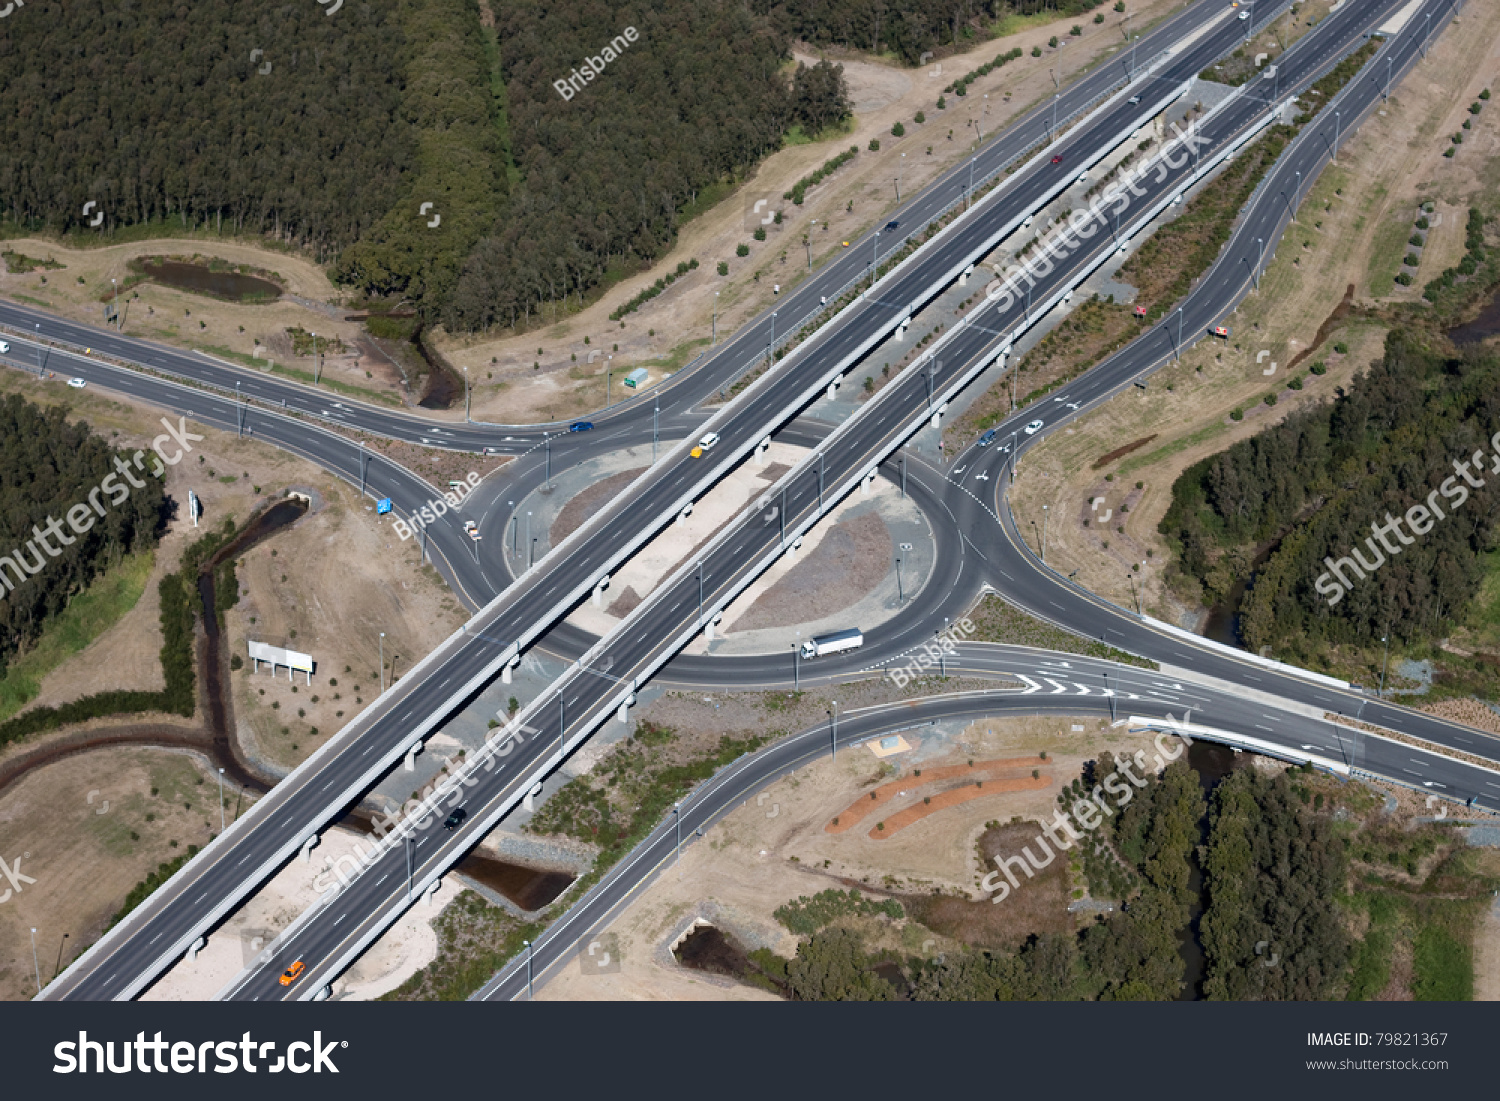 stock-photo-aerial-view-of-a-highway-jun